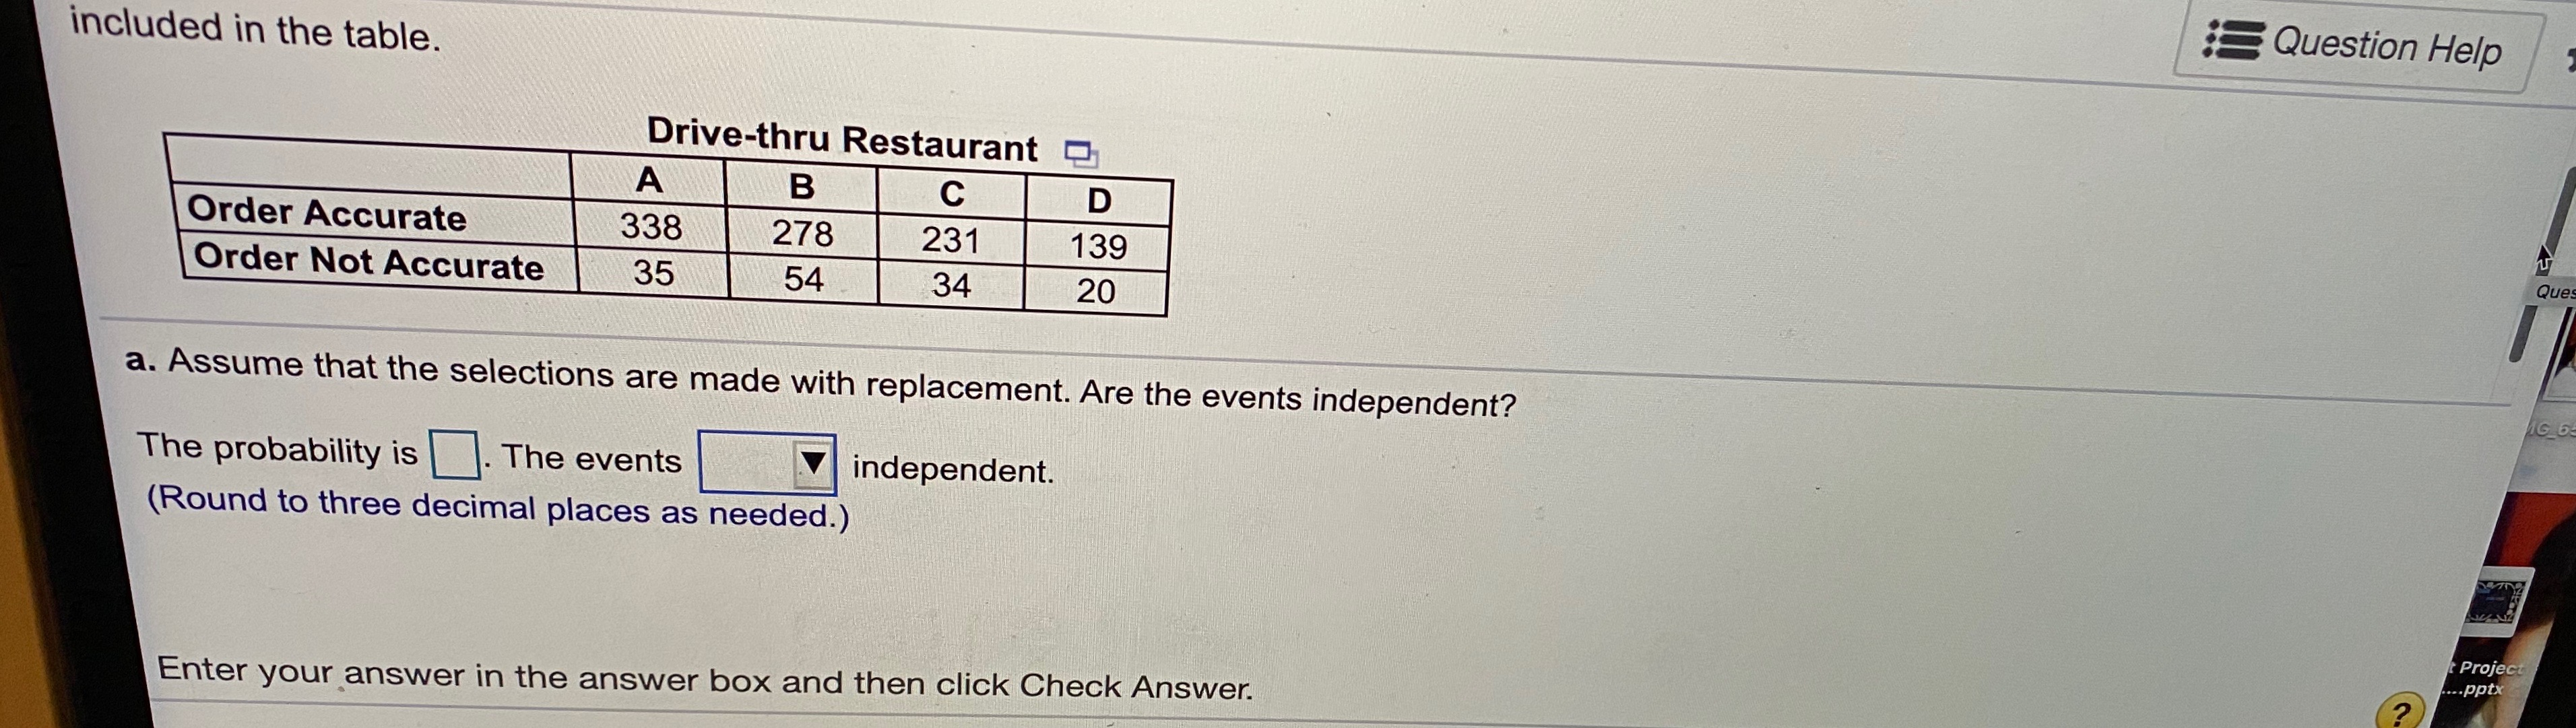 E Question Help included in the table. Drive-thru Restaurant O в Order Accurate 338 278 231 139 Ques Order Not Accurate 35 54 34 20 a. Assume that the selections are made with replacement. Are the events independent? AG 6 The probability is The events independent. (Round to three decimal places as needed.) tProject ....pptx Enter your answer in the answer box and then click Check Answer.